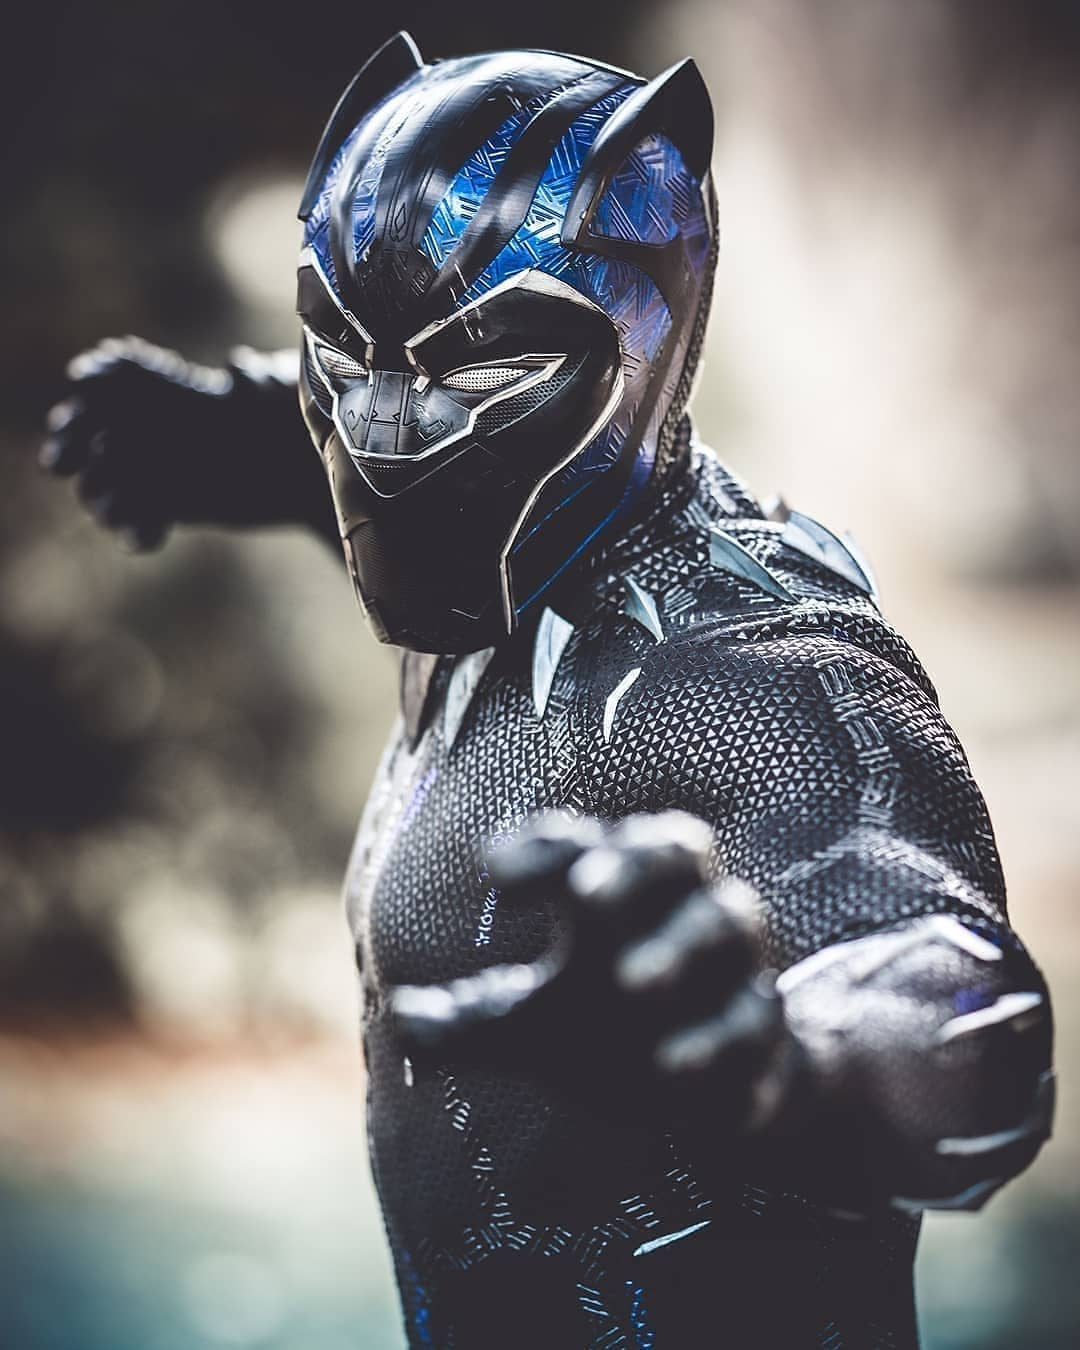 blackpanther cosplay by lovieleeofficial – Photo by graceandshinephoto